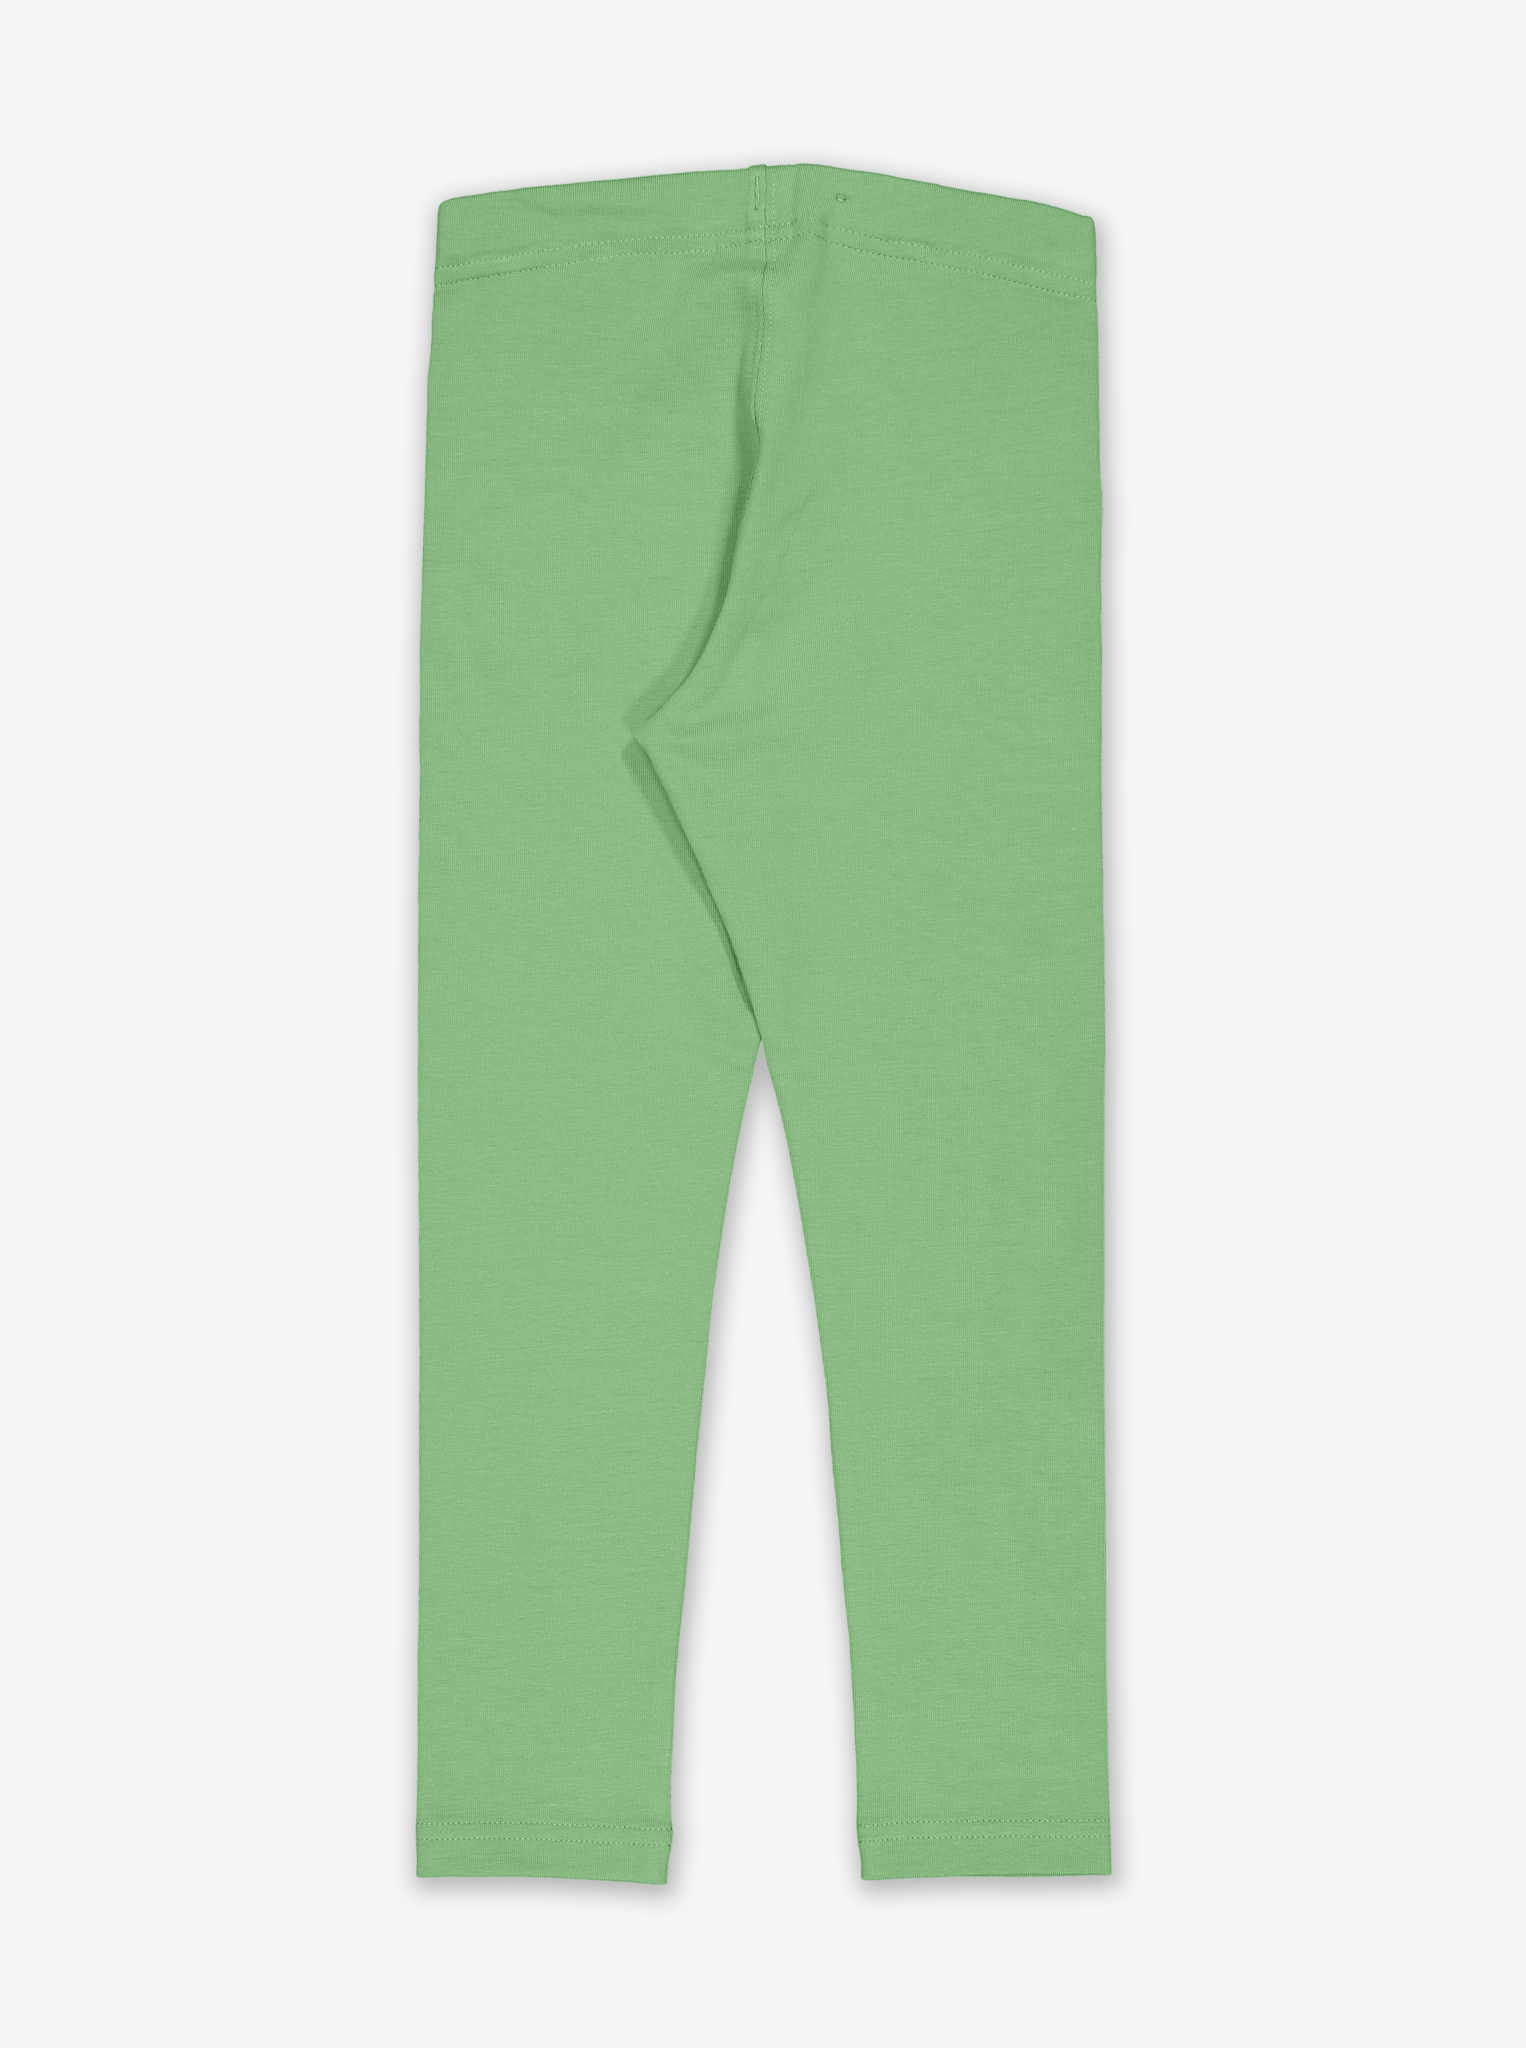 Organic Kids Leggings-Unisex-1-6y-Green